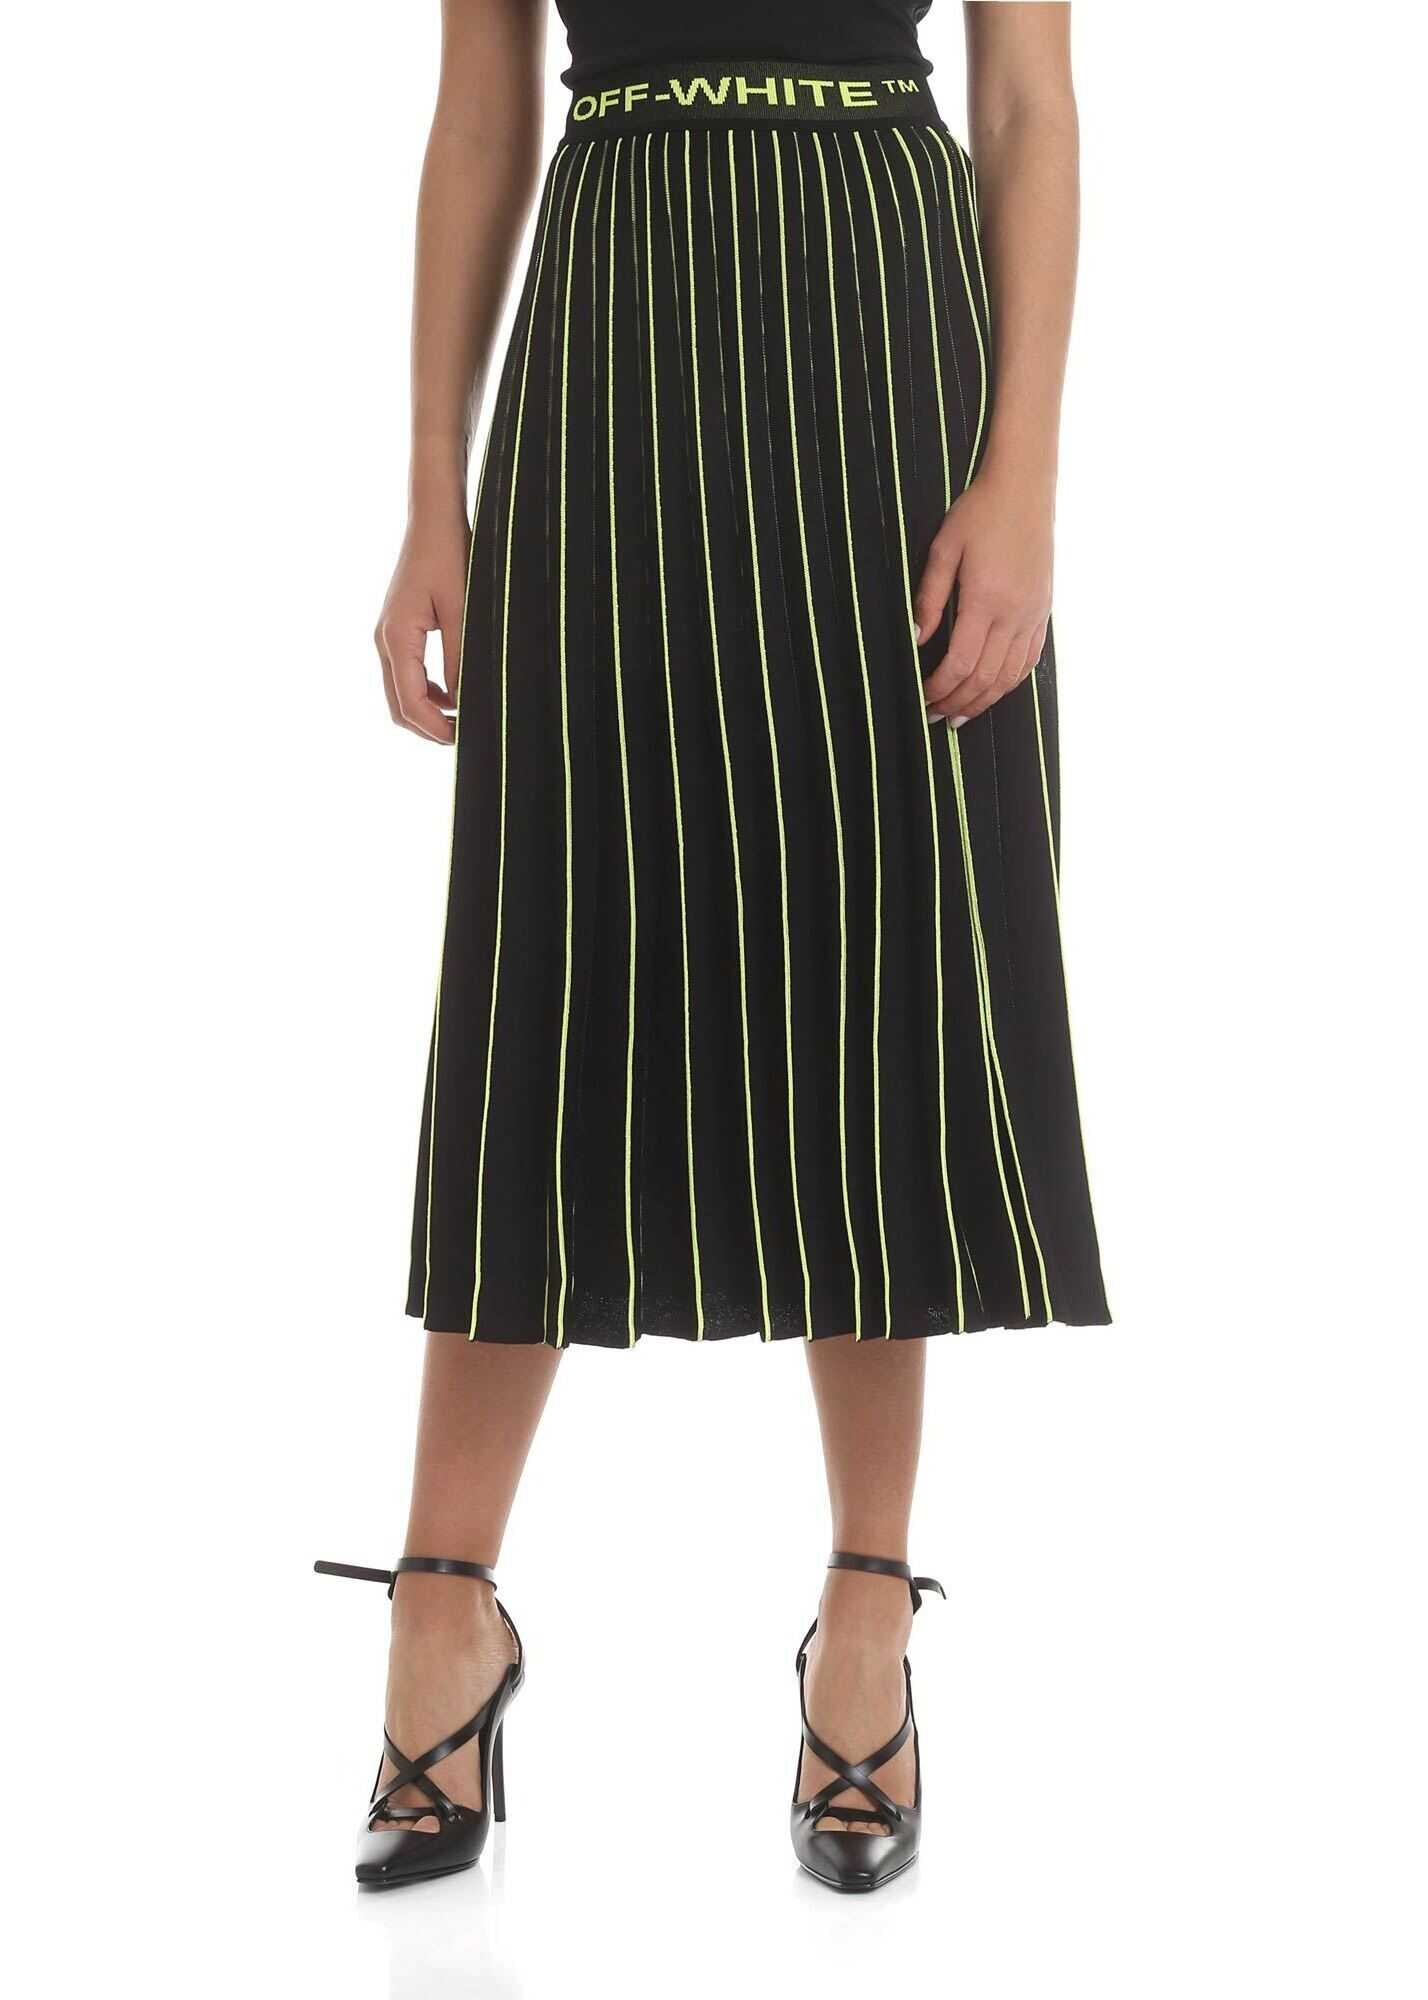 Off-White Pleated Midi Skirt In Black And Neon Green Black